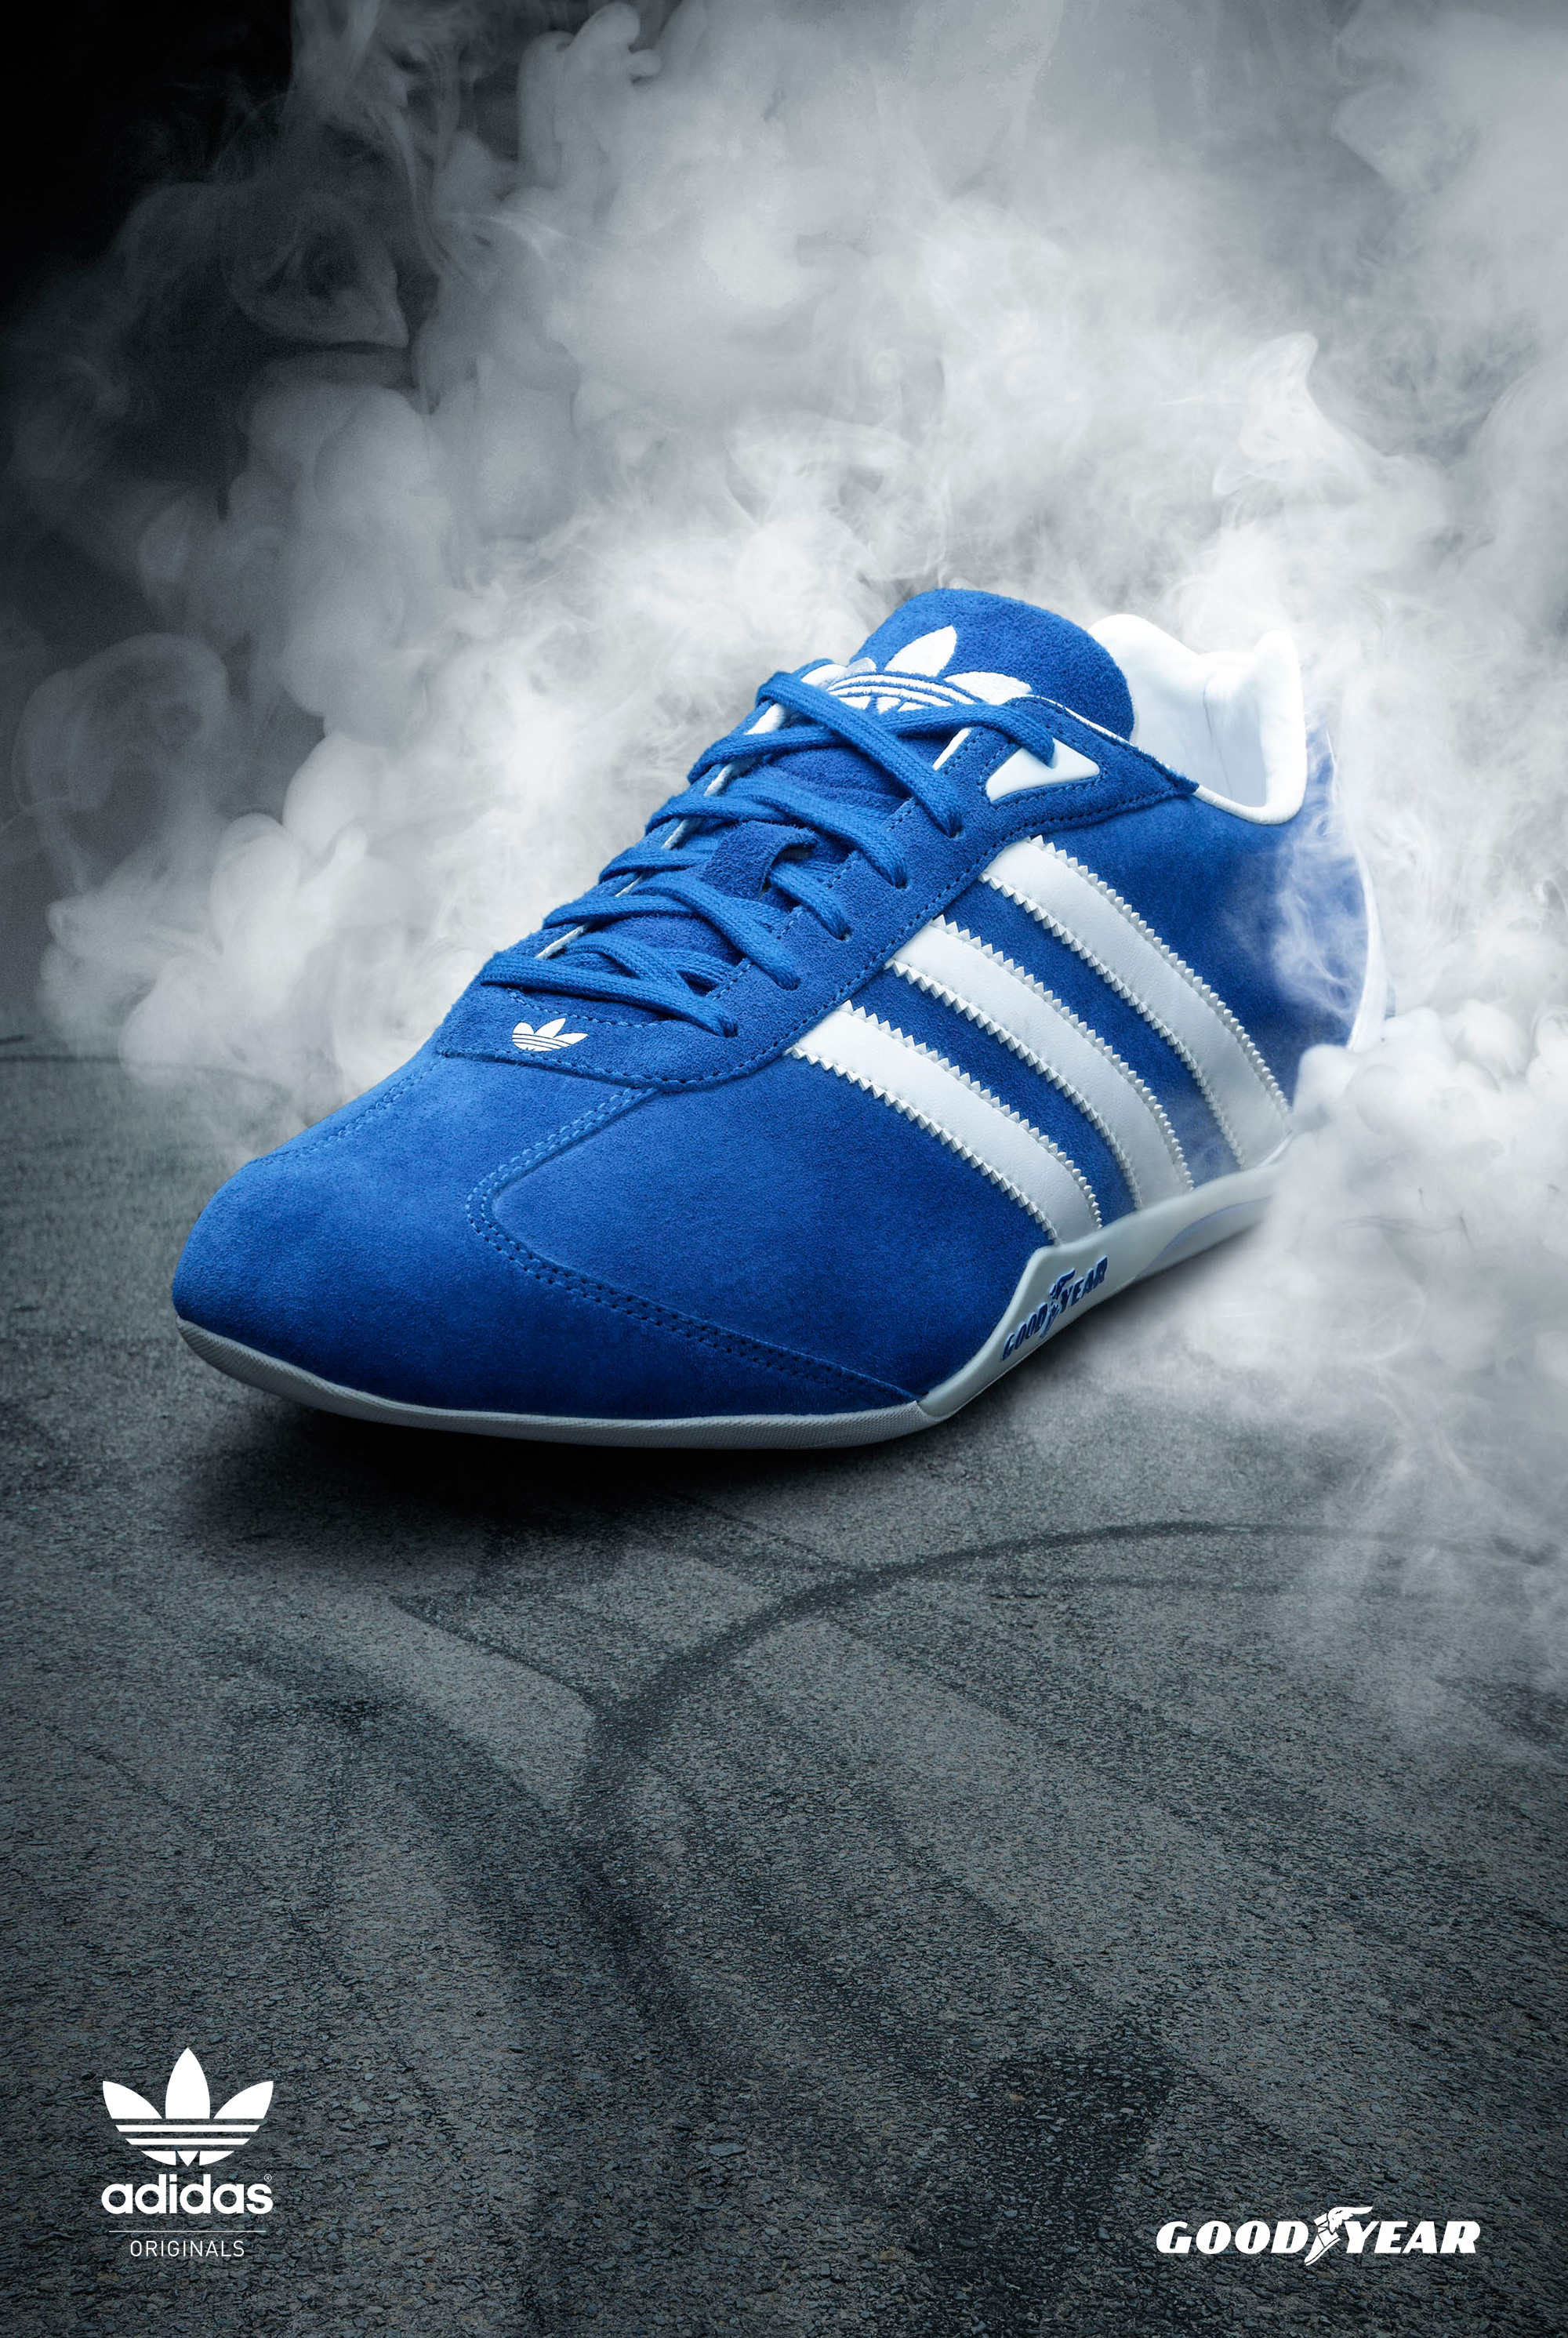 adidas goodyear shoes Online Shopping